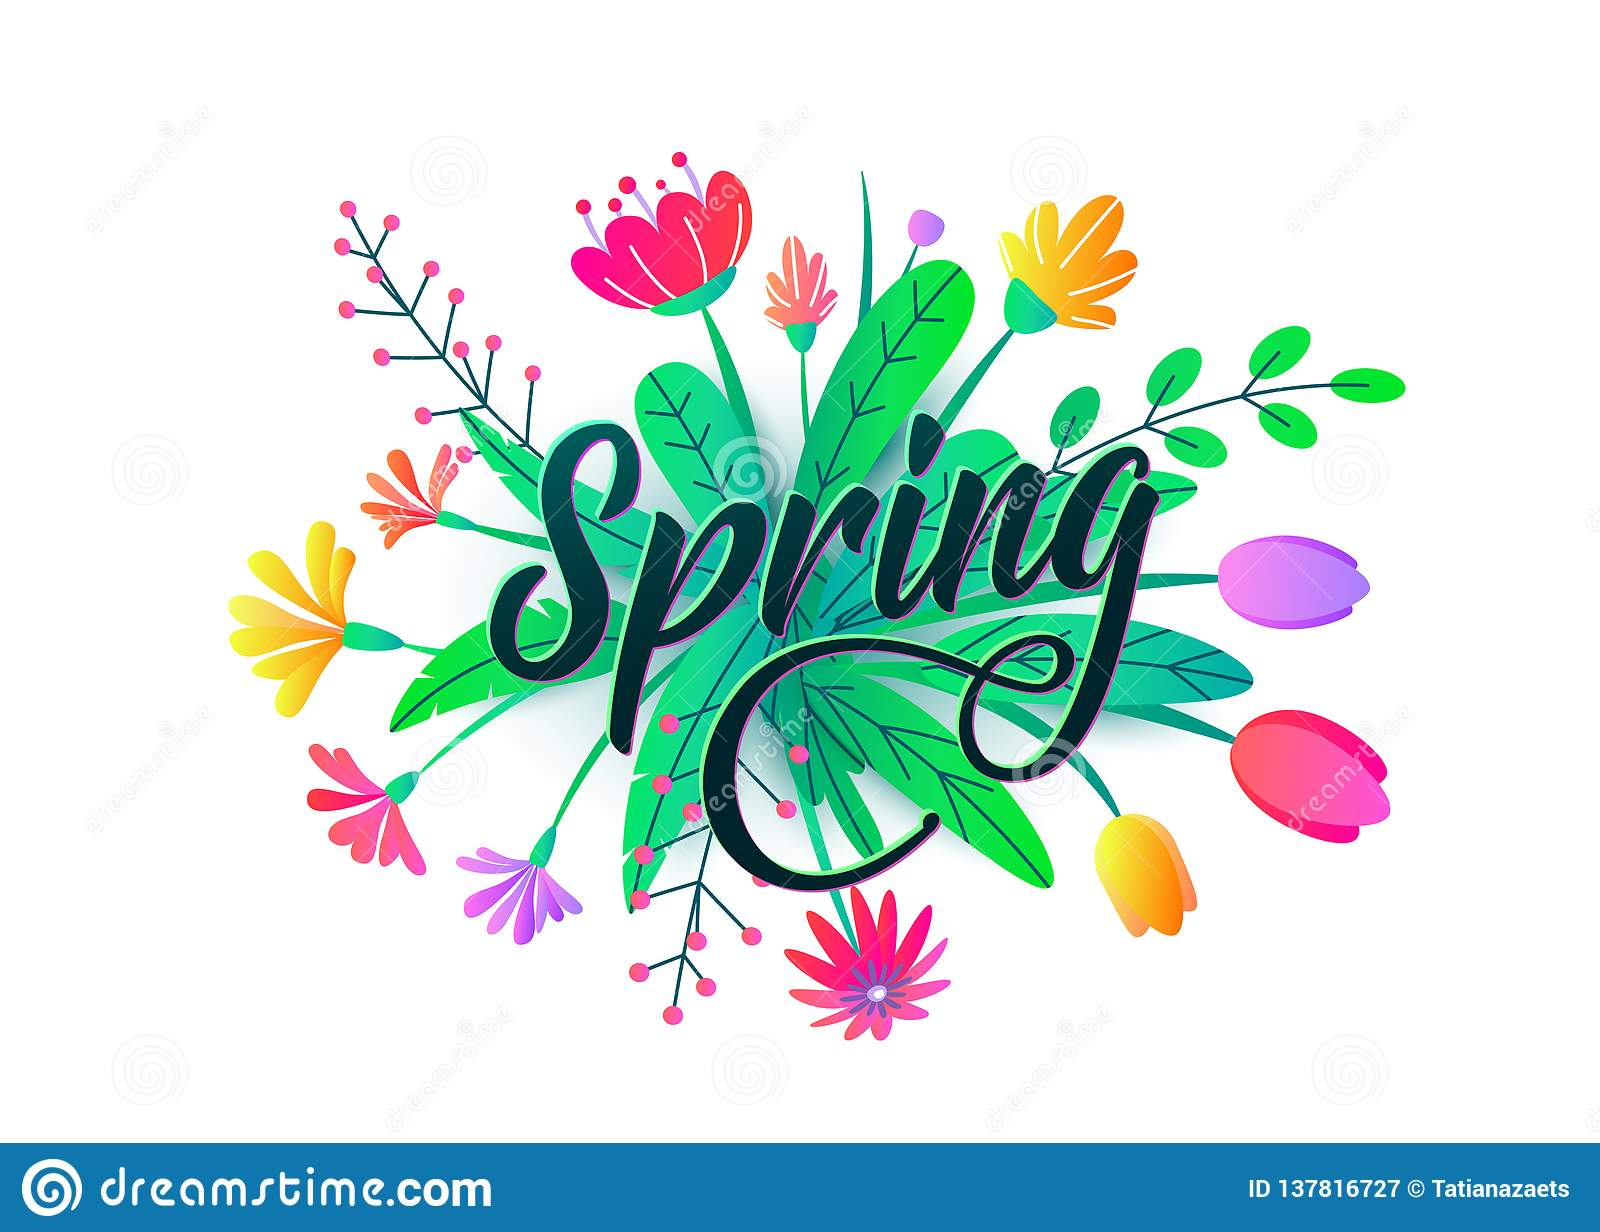 Spring Word Vector Background With Flat Minimal Flowers Leaves Isolated White Floral